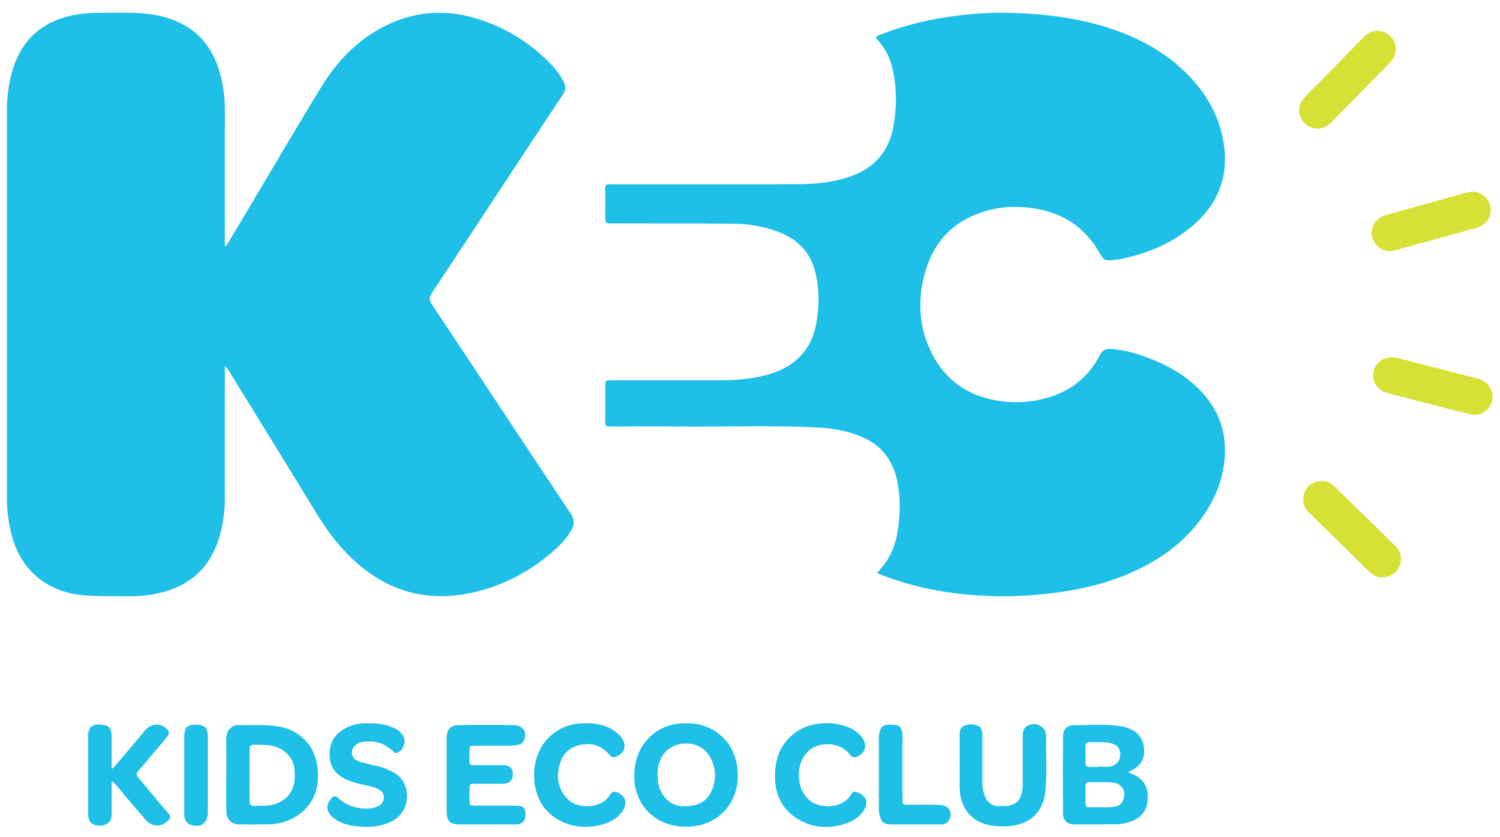 Kid's Eco Club